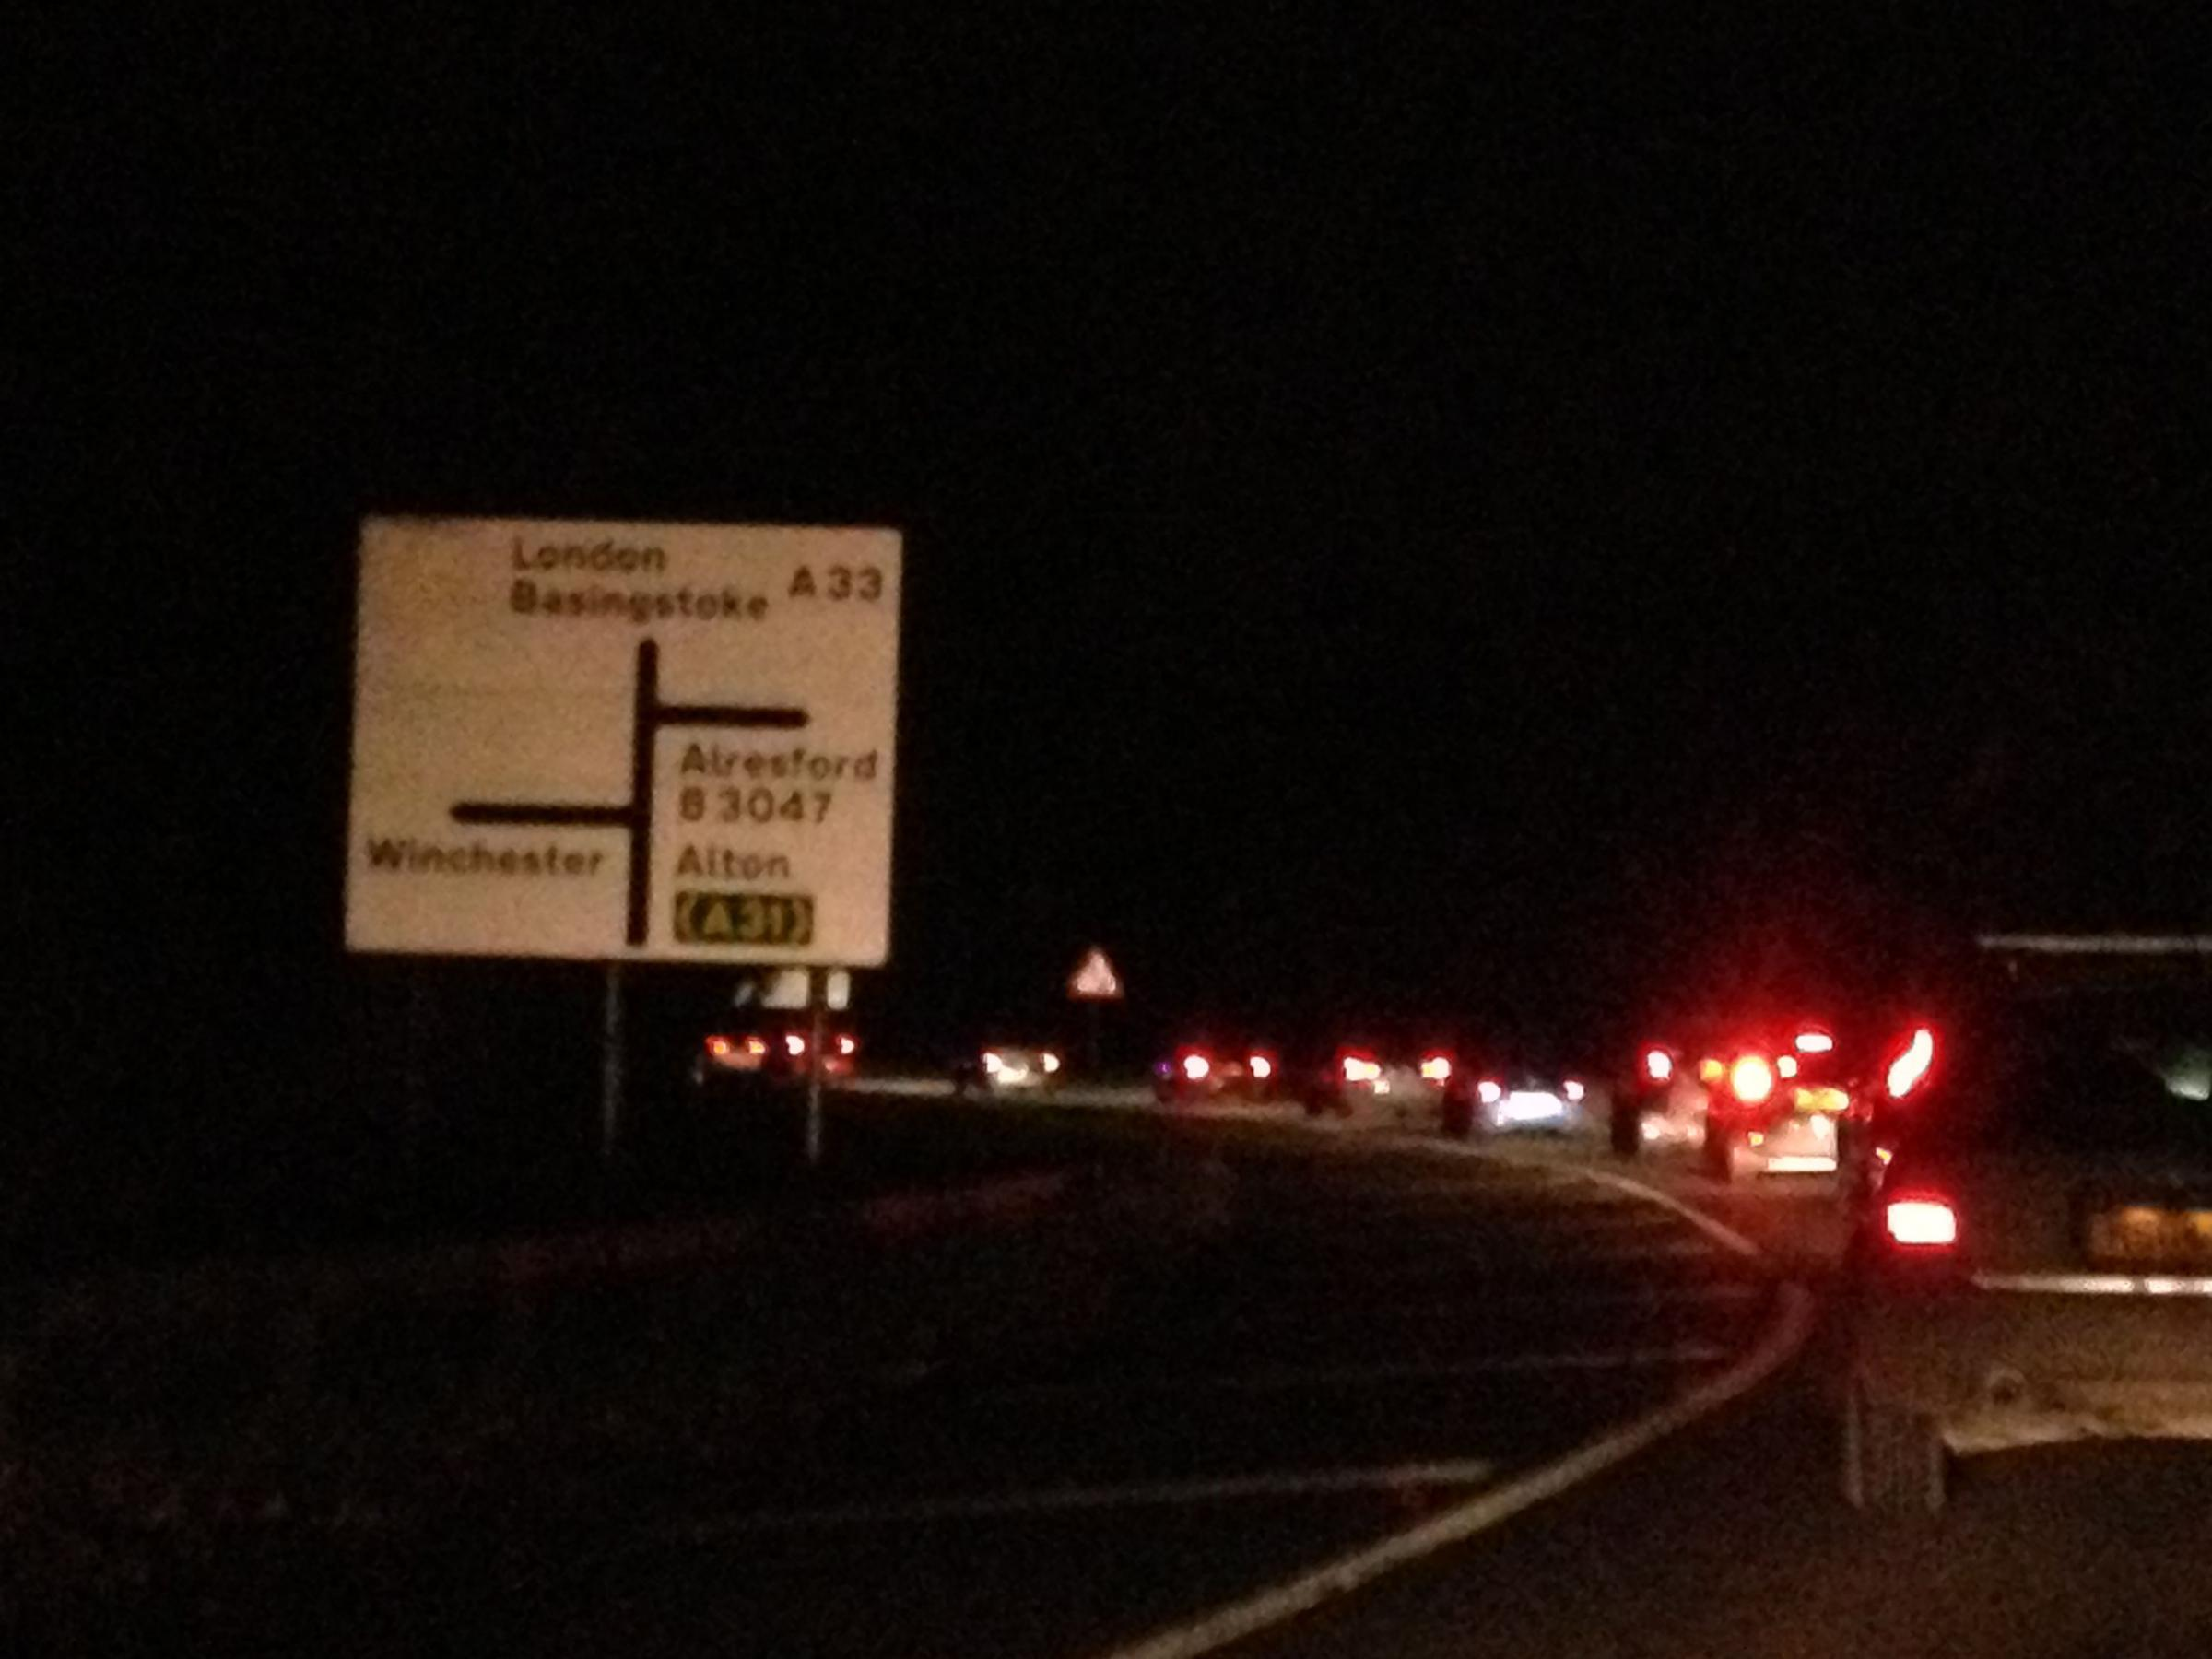 The crash caused tailbacks on the A33 this evening.